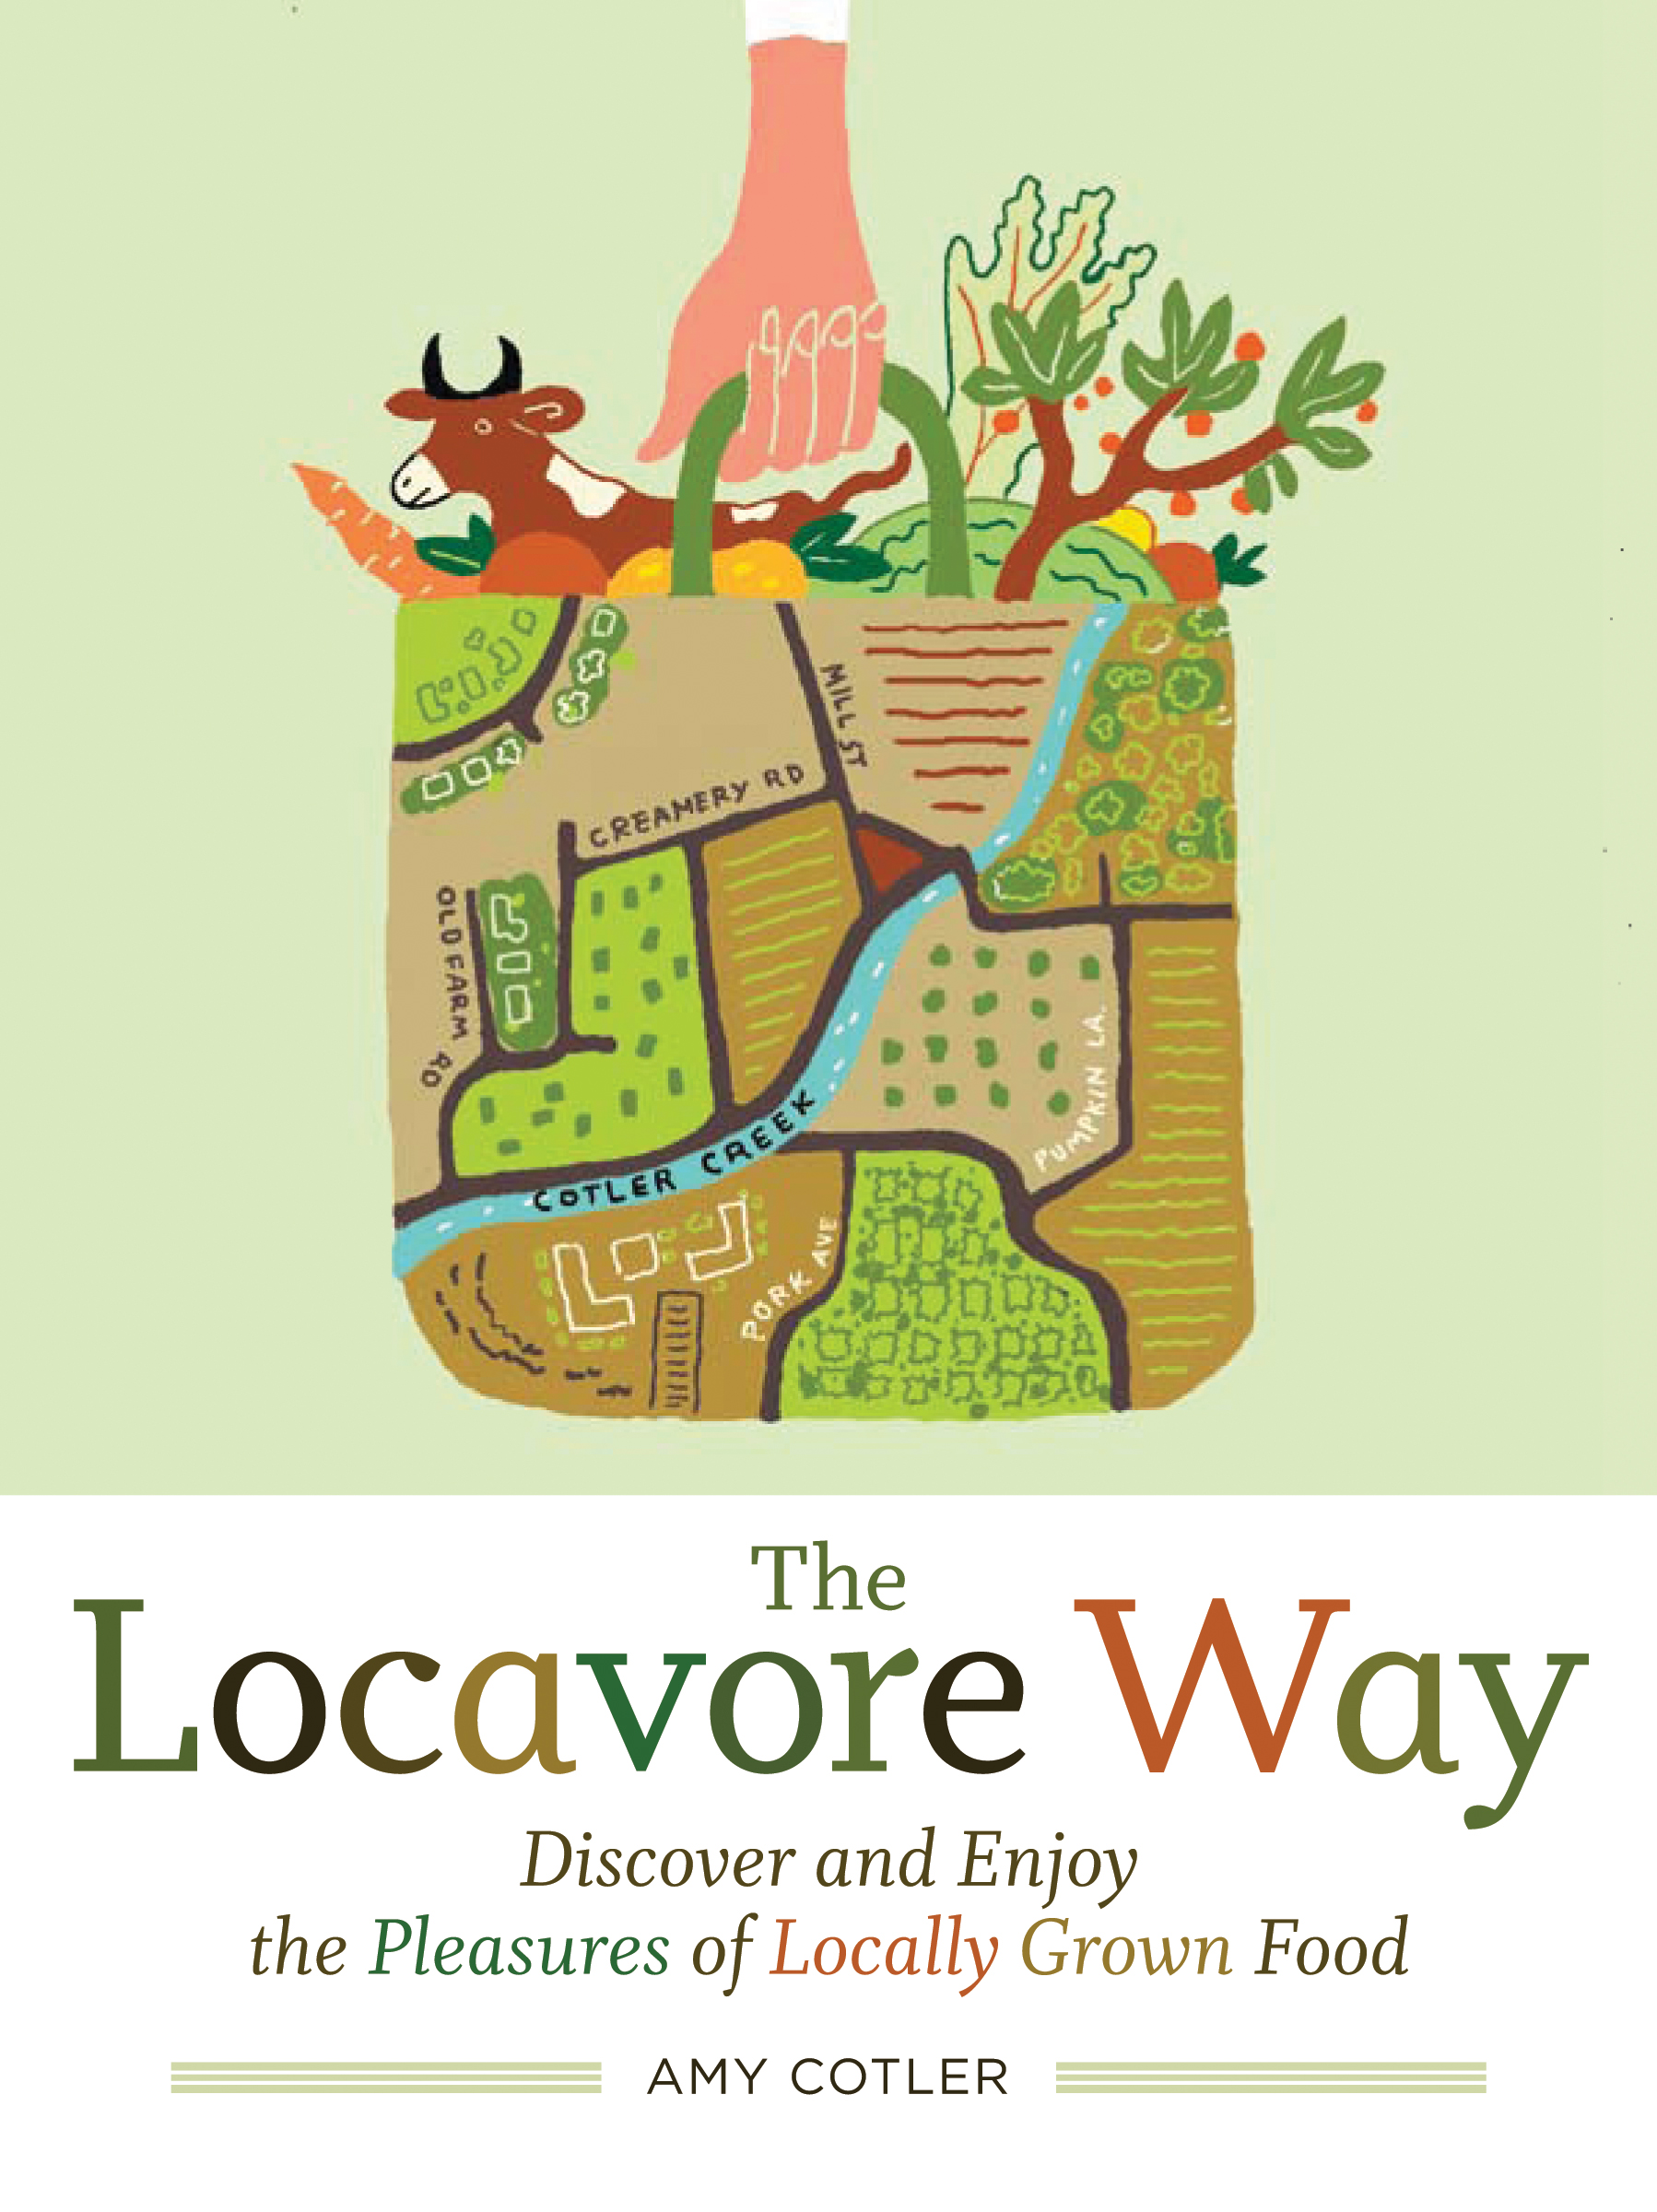 The Locavore Way Discover and Enjoy the Pleasures of Locally Grown Food - Amy Cotler